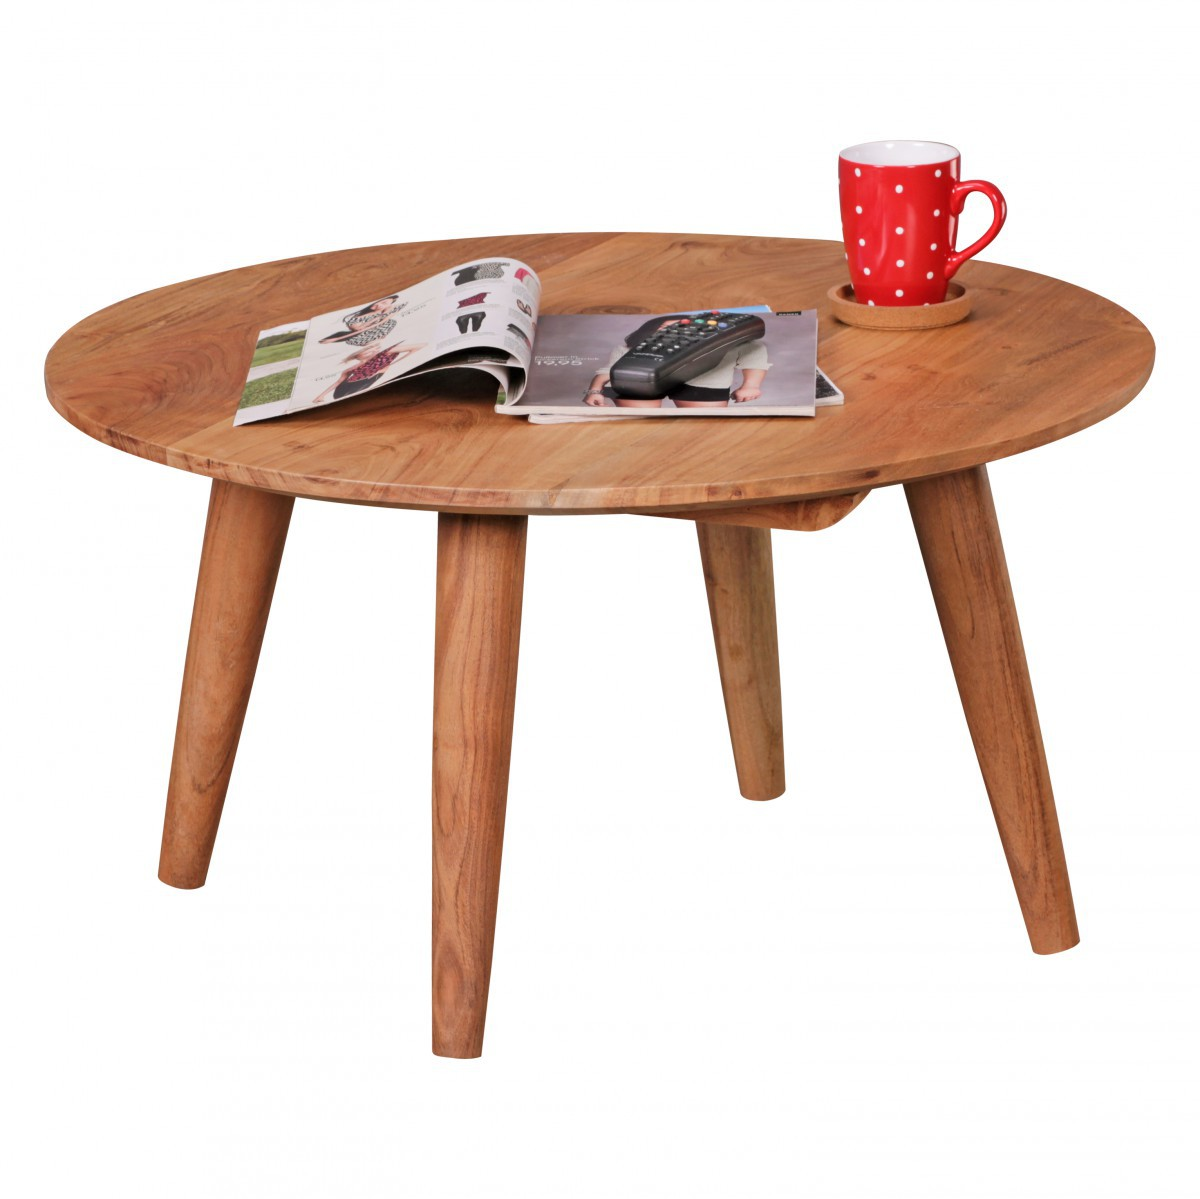 Finebuy table basse en bois massif acacia table basse for Table basse ronde industrielle